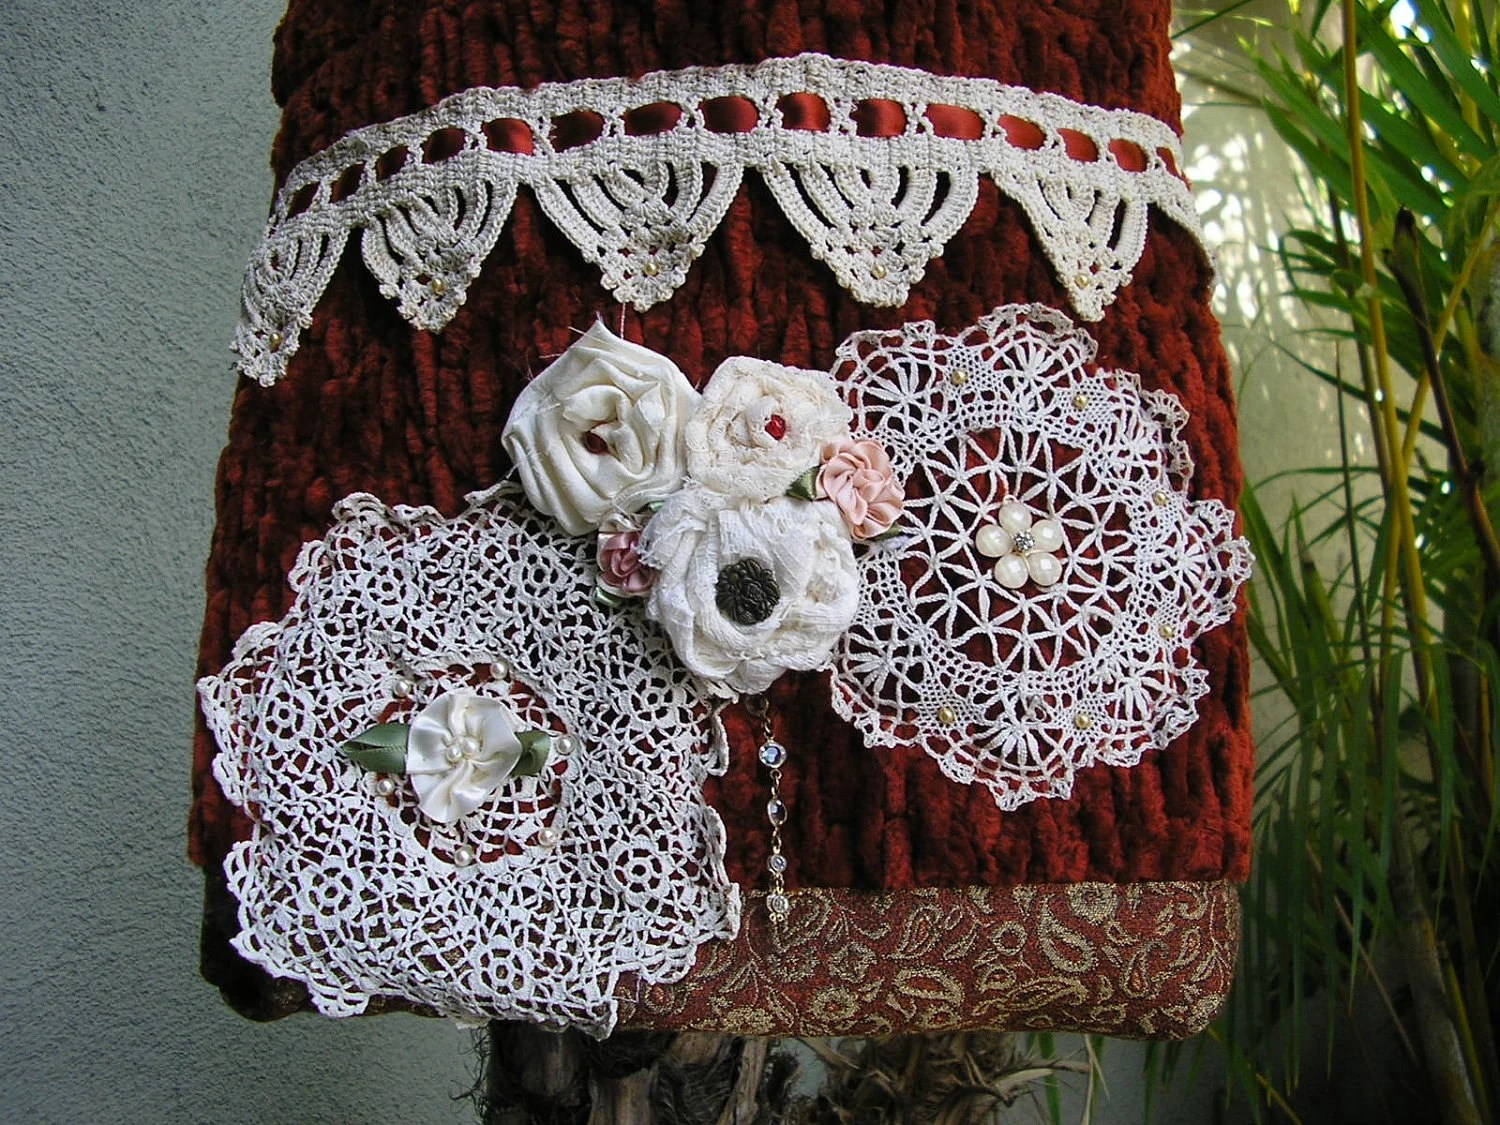 Doily Embellished Purse, pearls, doilies, flowers, handmade fabric bag